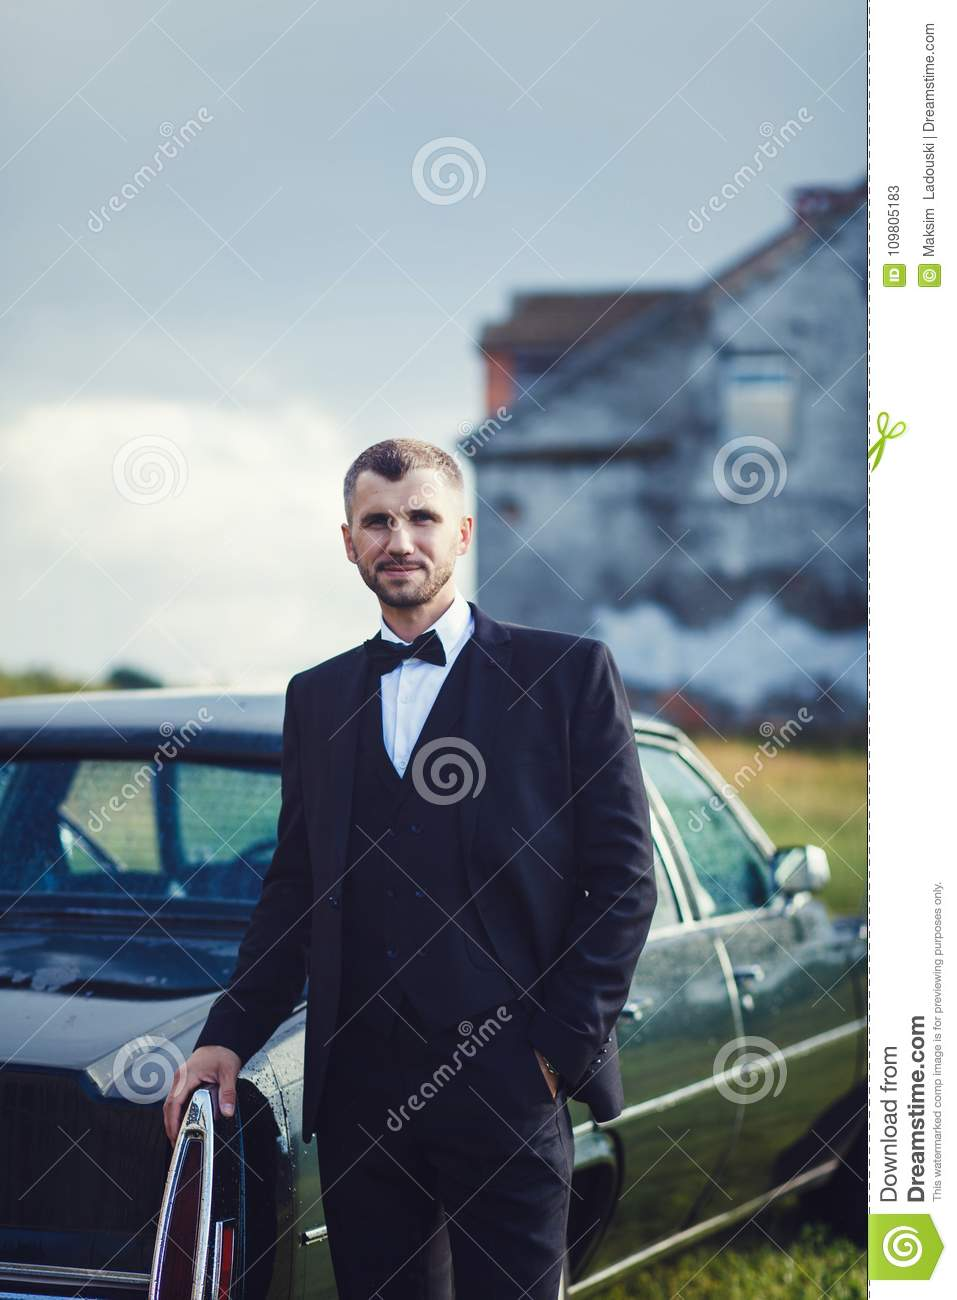 Rich Groom At Wedding Day Near Car Stock Image - Image of beauty ...